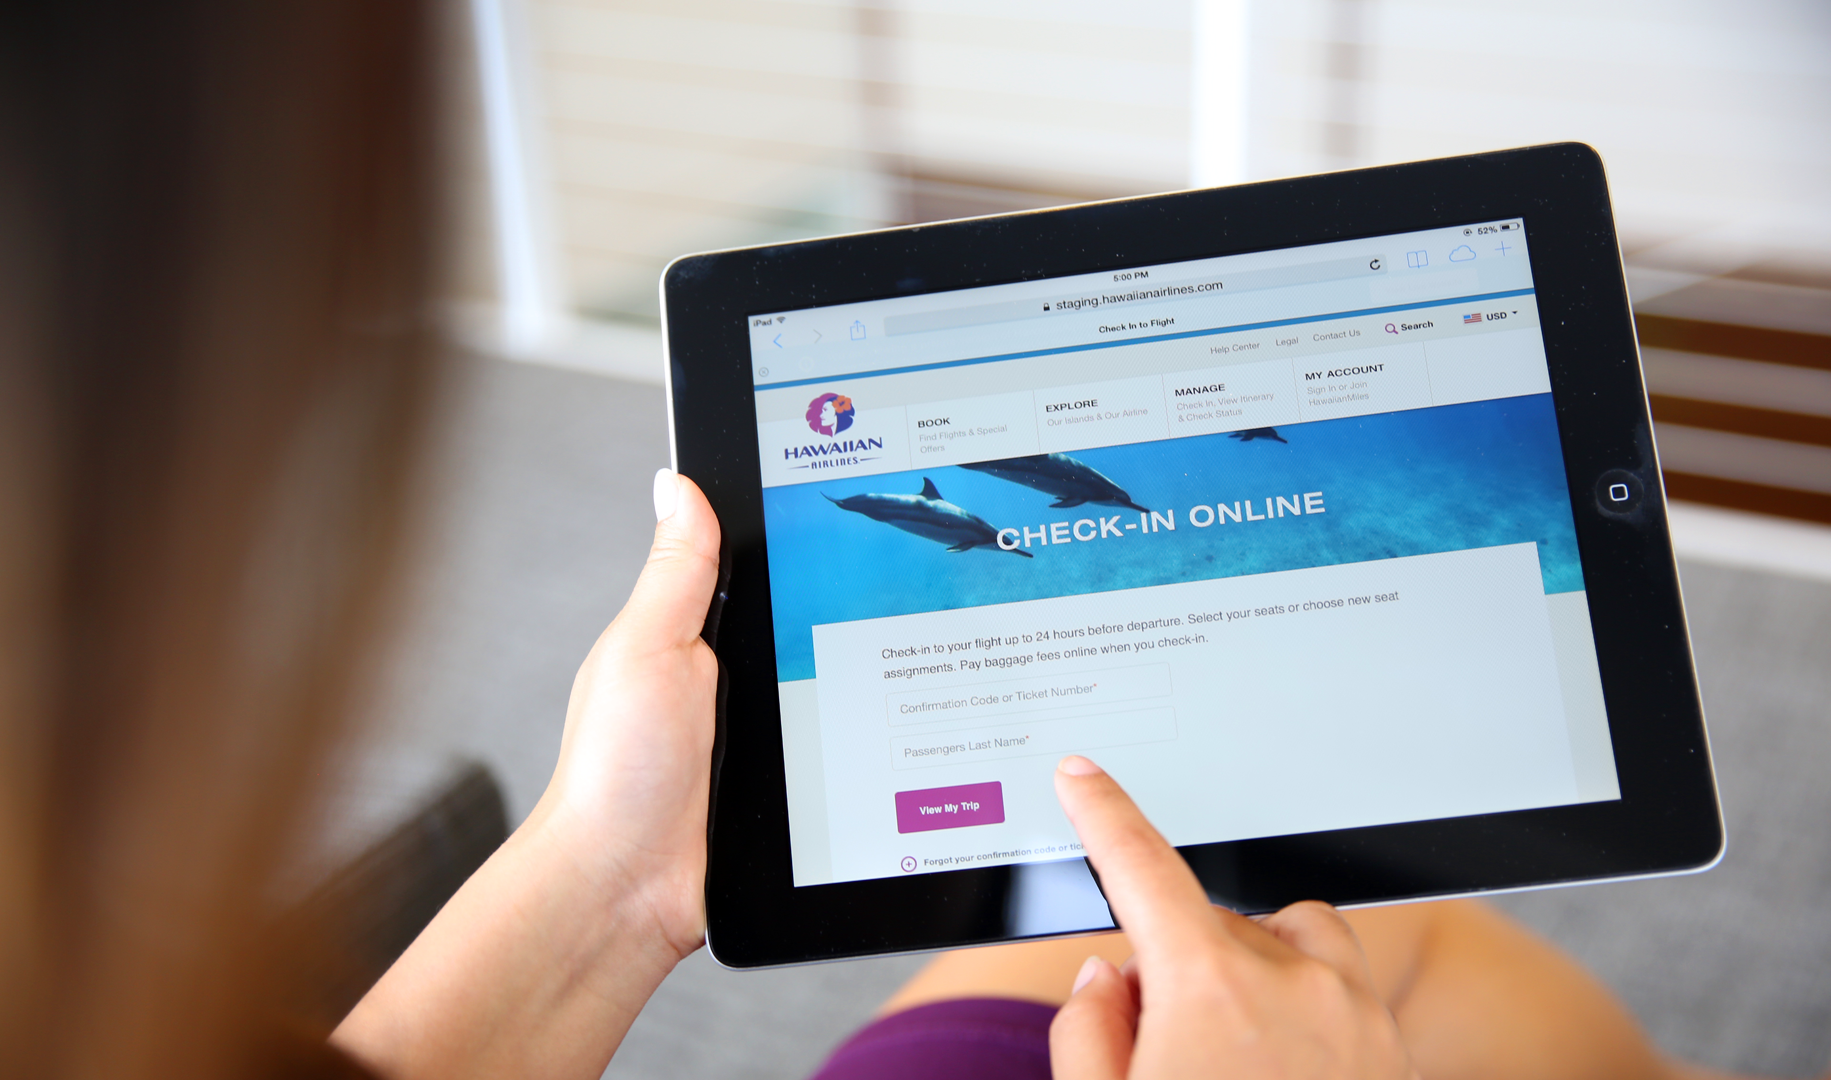 Web Check-In | Hawaiian Airlines